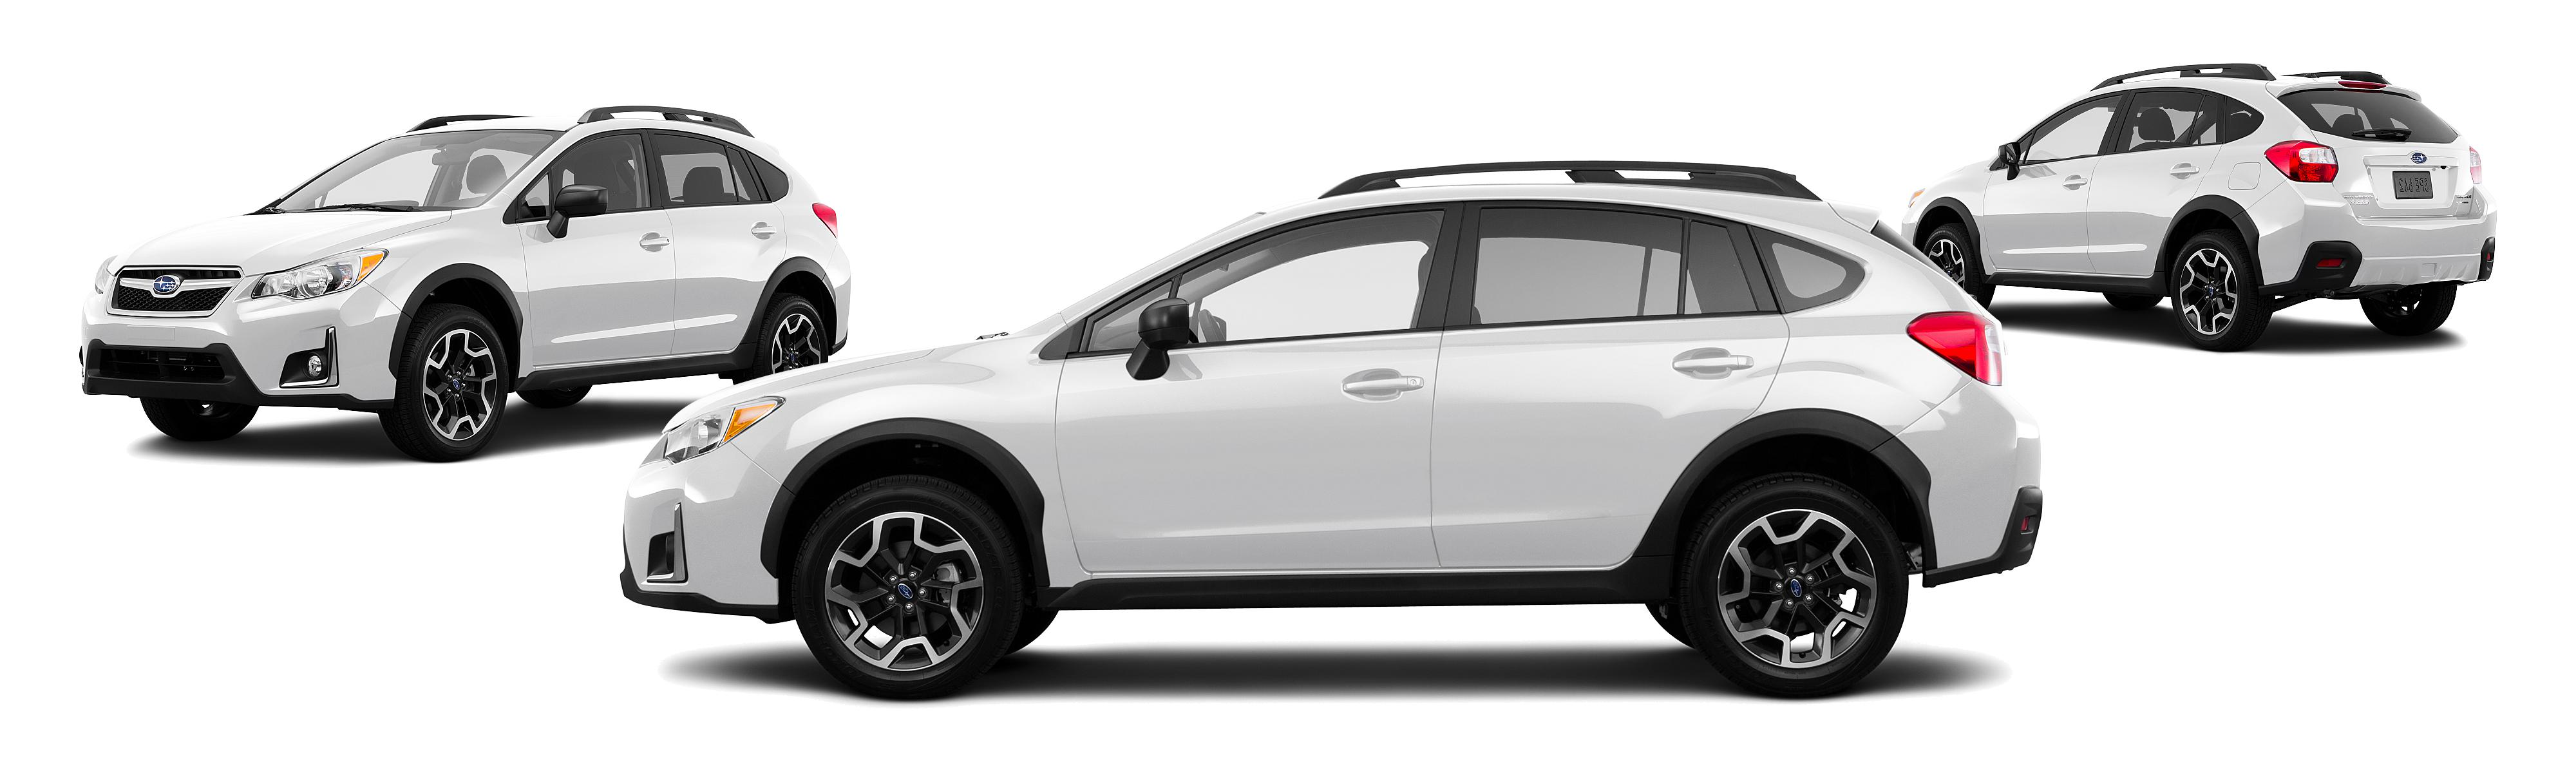 2017 subaru crosstrek awd. Black Bedroom Furniture Sets. Home Design Ideas